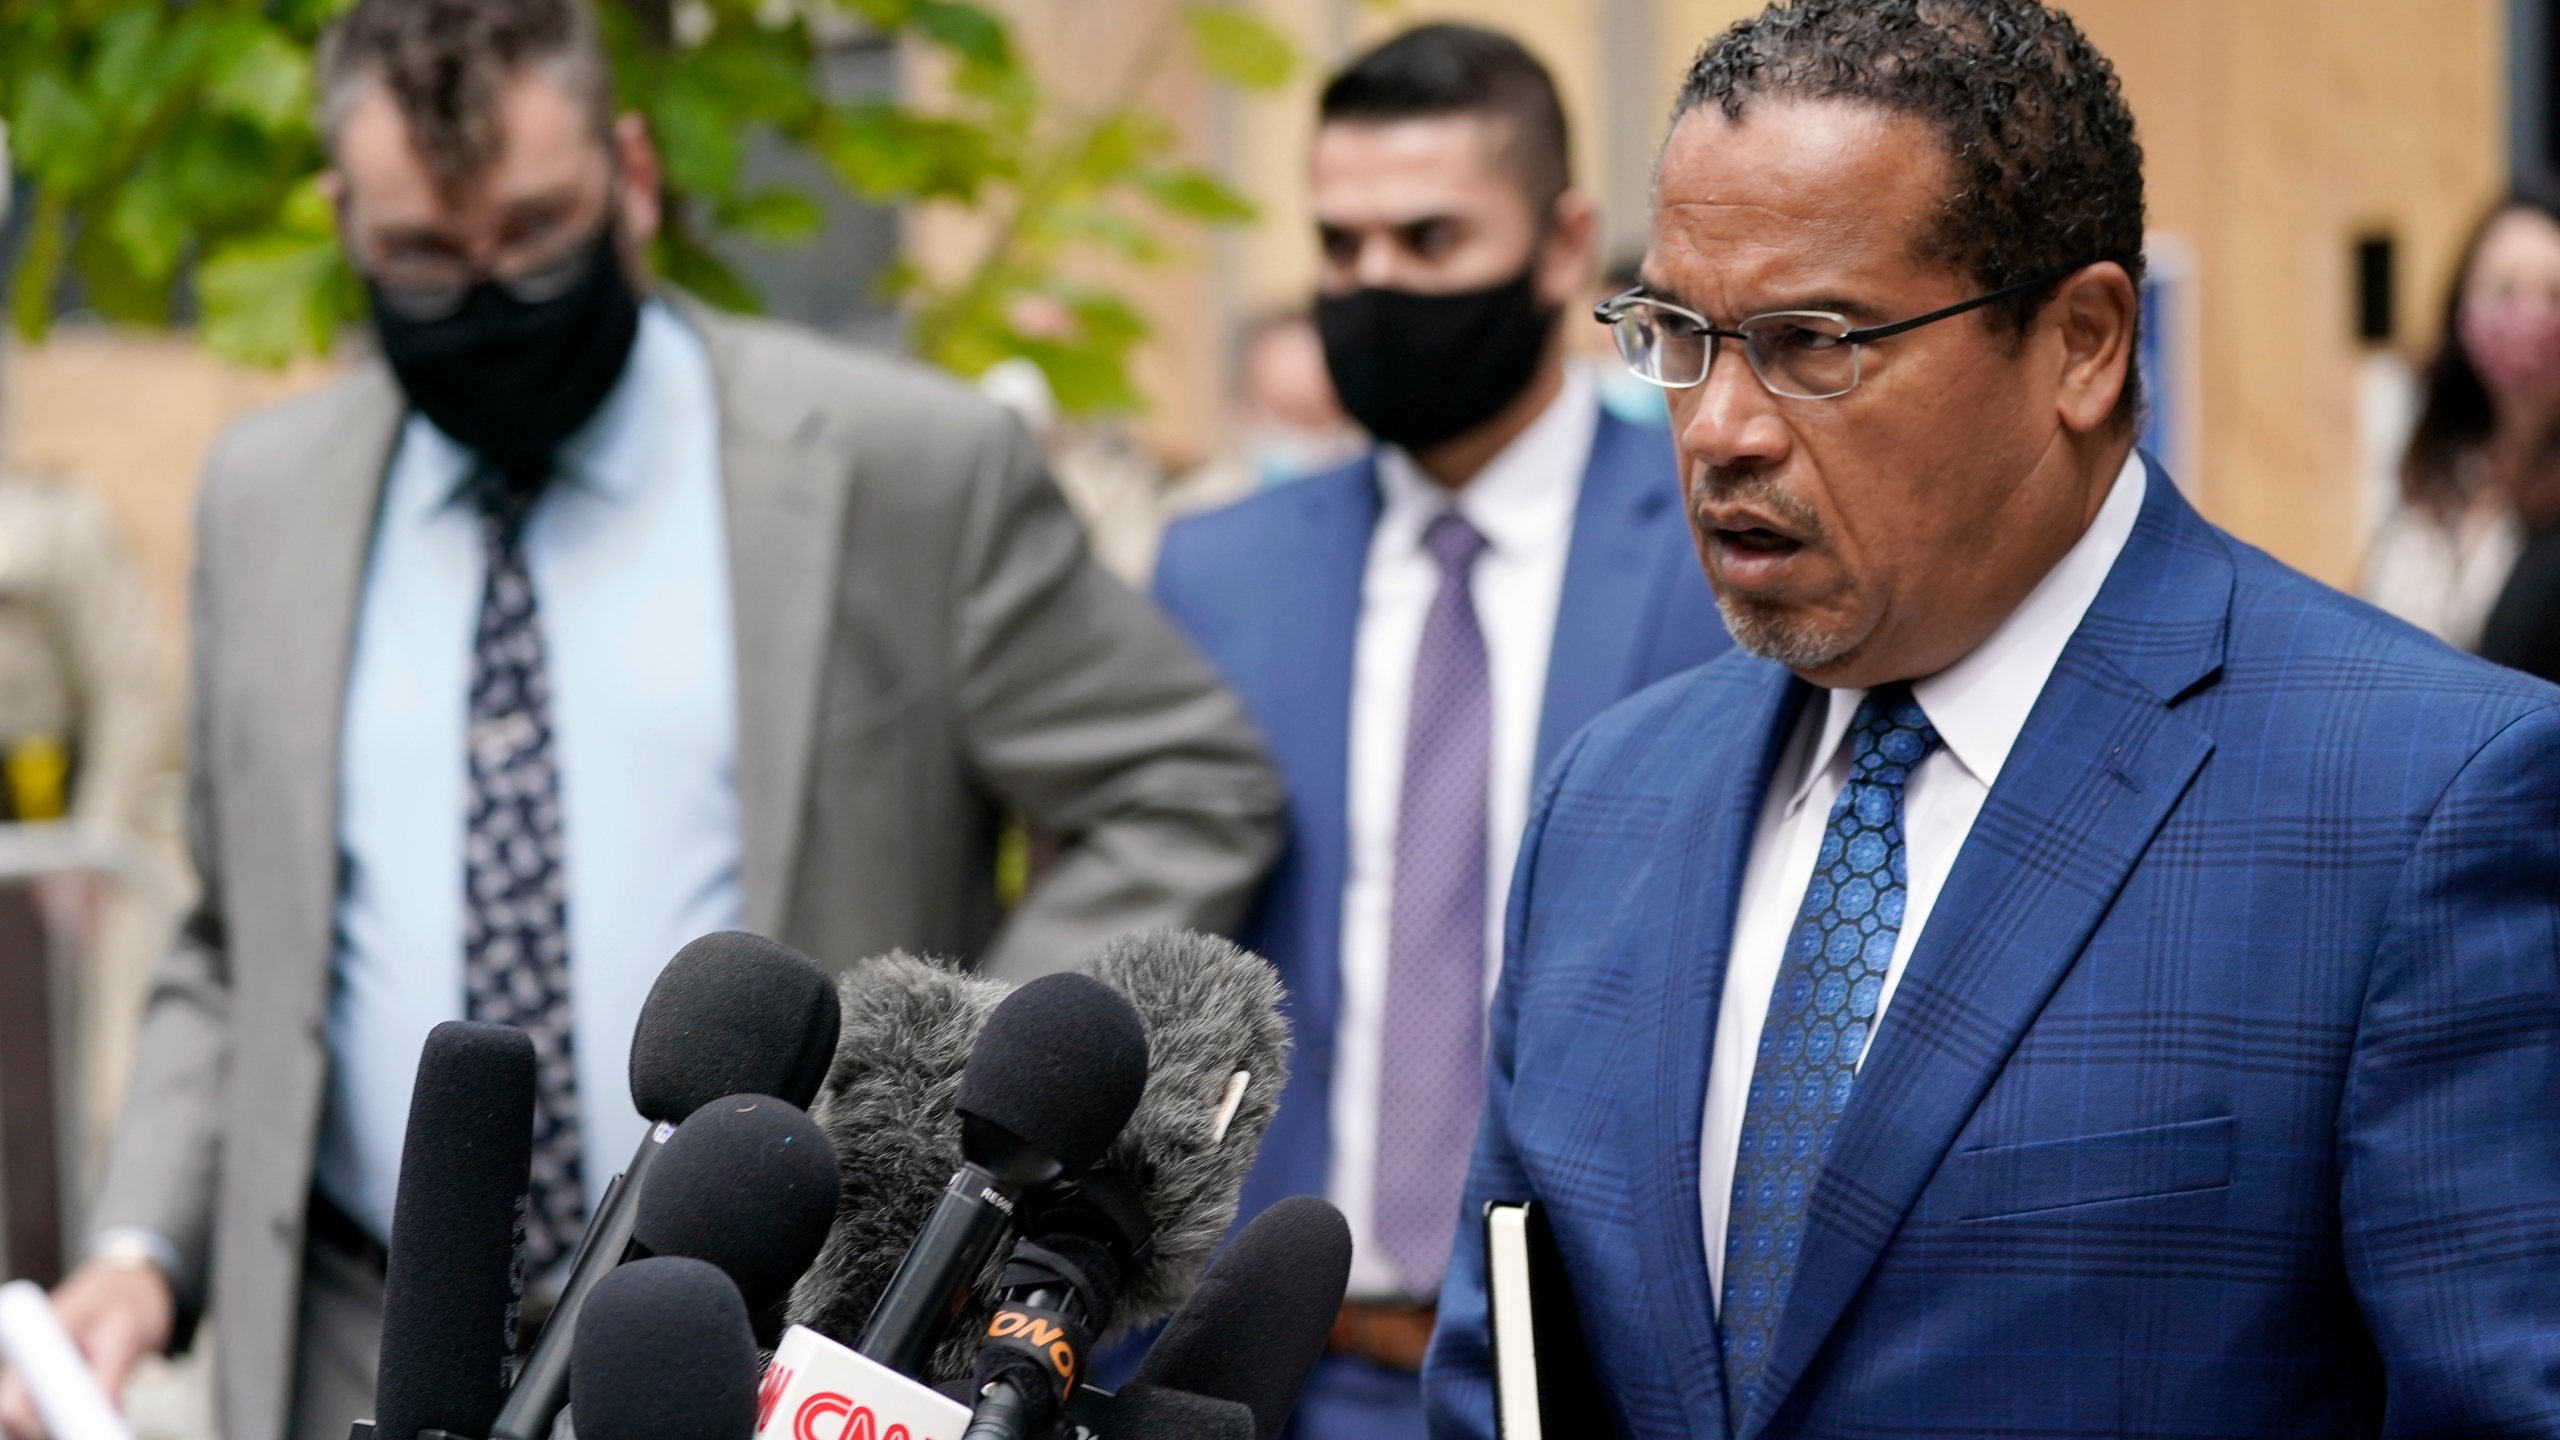 In this Sept. 11, 2020 file photo, Minnesota Attorney General Keith Ellison, right, addresses reporters outside the Hennepin County Family Justice Center in Minneapolis. (AP Photo/Jim Mone, File)In this Sept. 11, 2020 file photo, Minnesota Attorney General Keith Ellison, right, addresses reporters outside the Hennepin County Family Justice Center in Minneapolis. (AP Photo/Jim Mone, File)